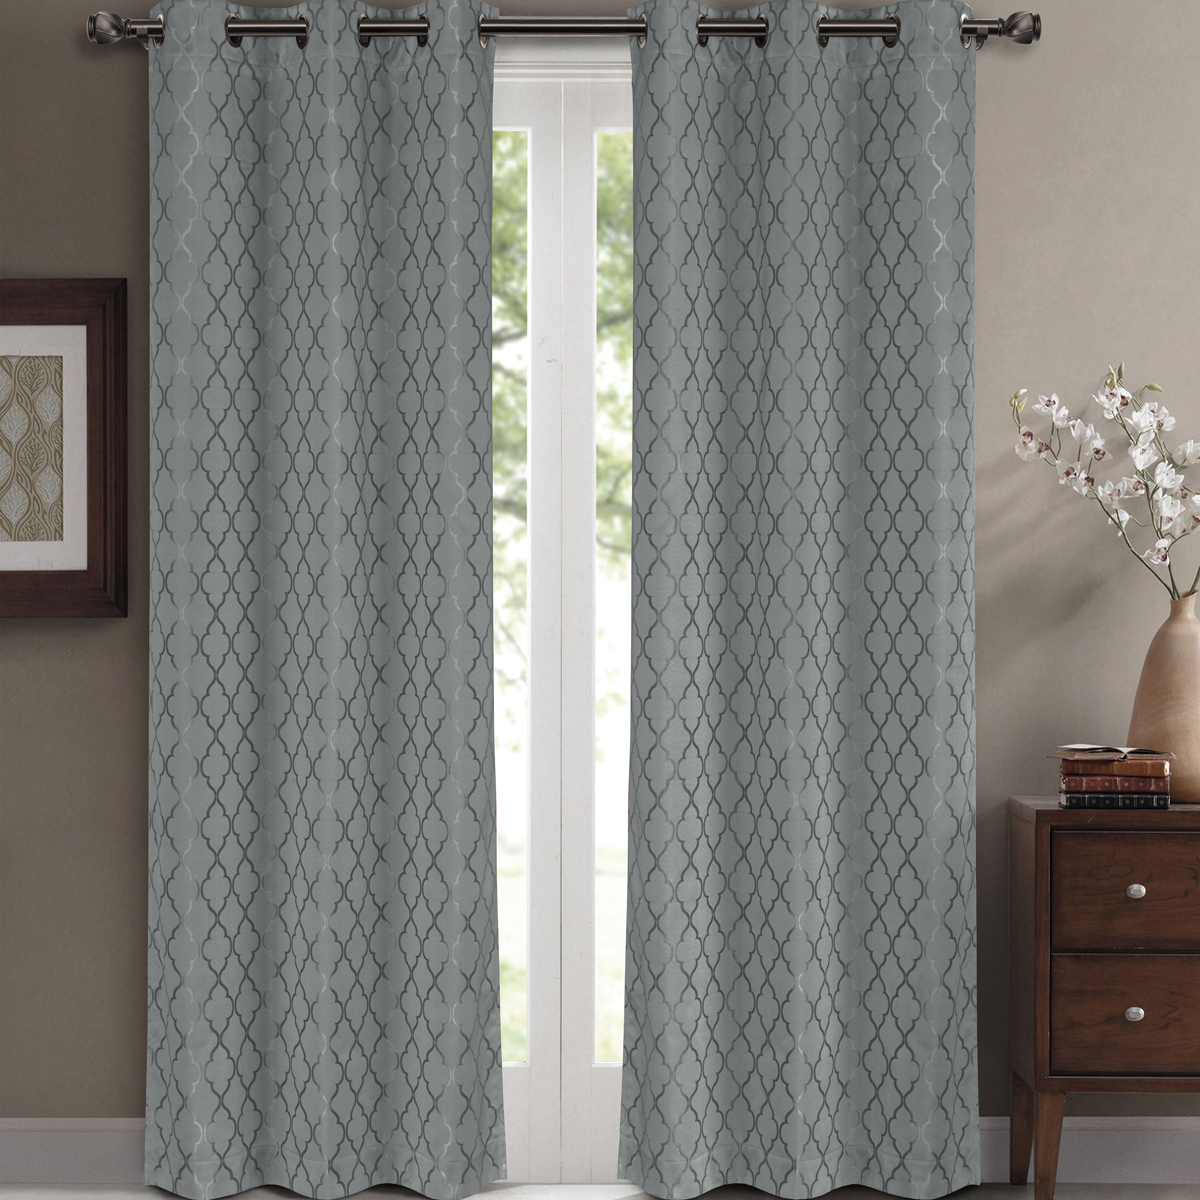 Navy Thermal Curtains | Thermal Insulated Curtains | Insulate Curtains